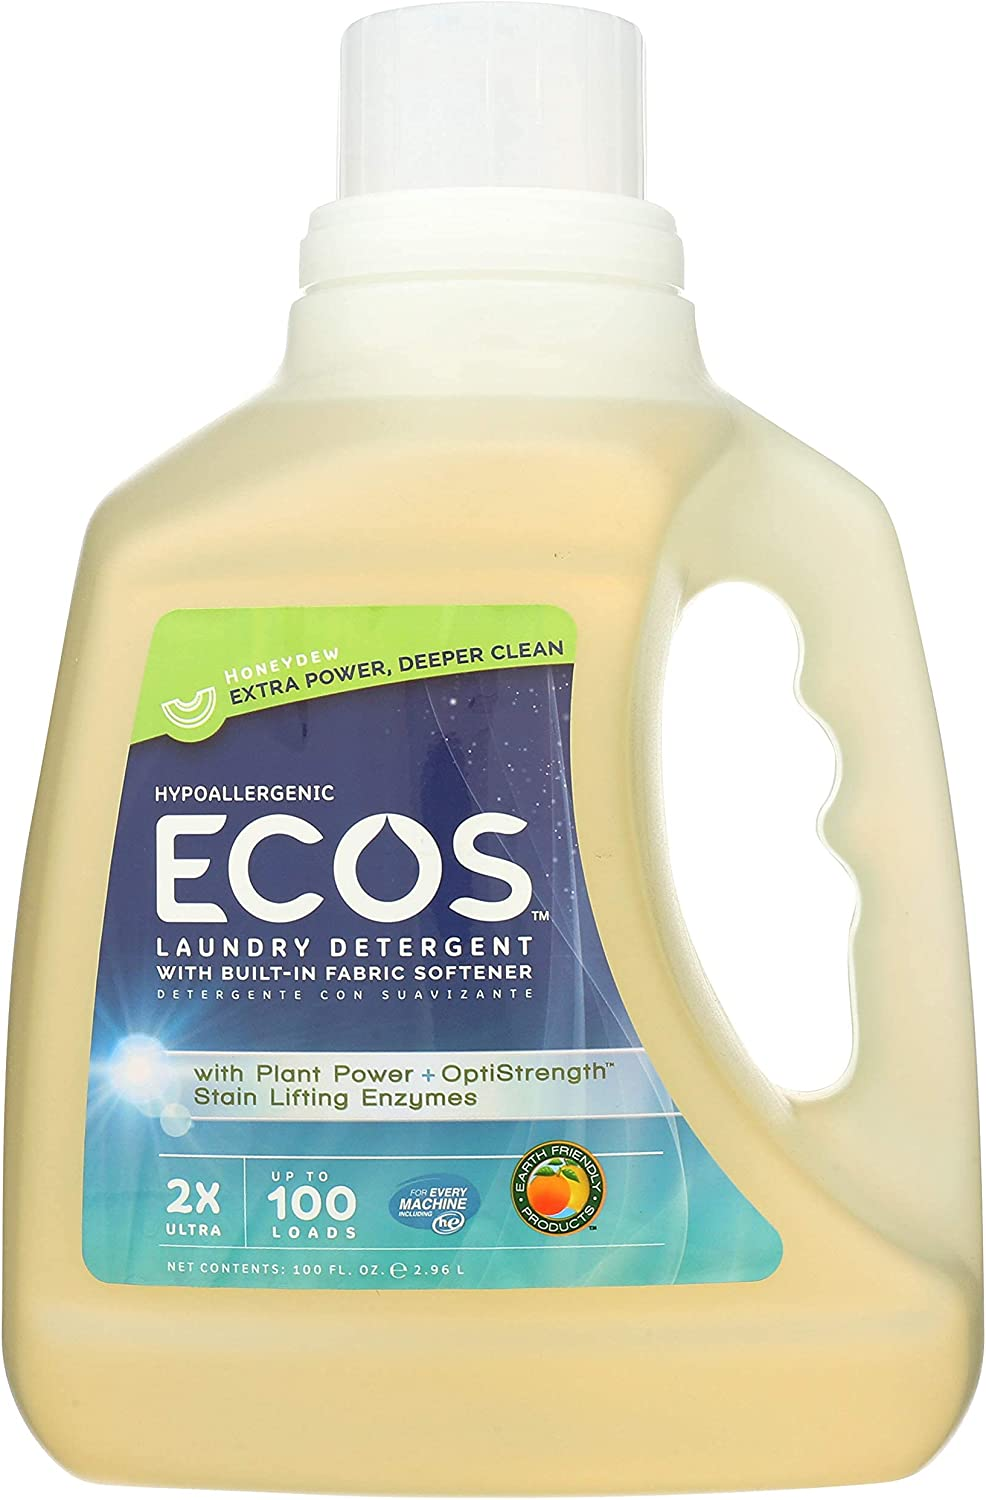 Laundary Detergent price with Built in Sale SALE% OFF Honeyde Fabric Enzymes Softner